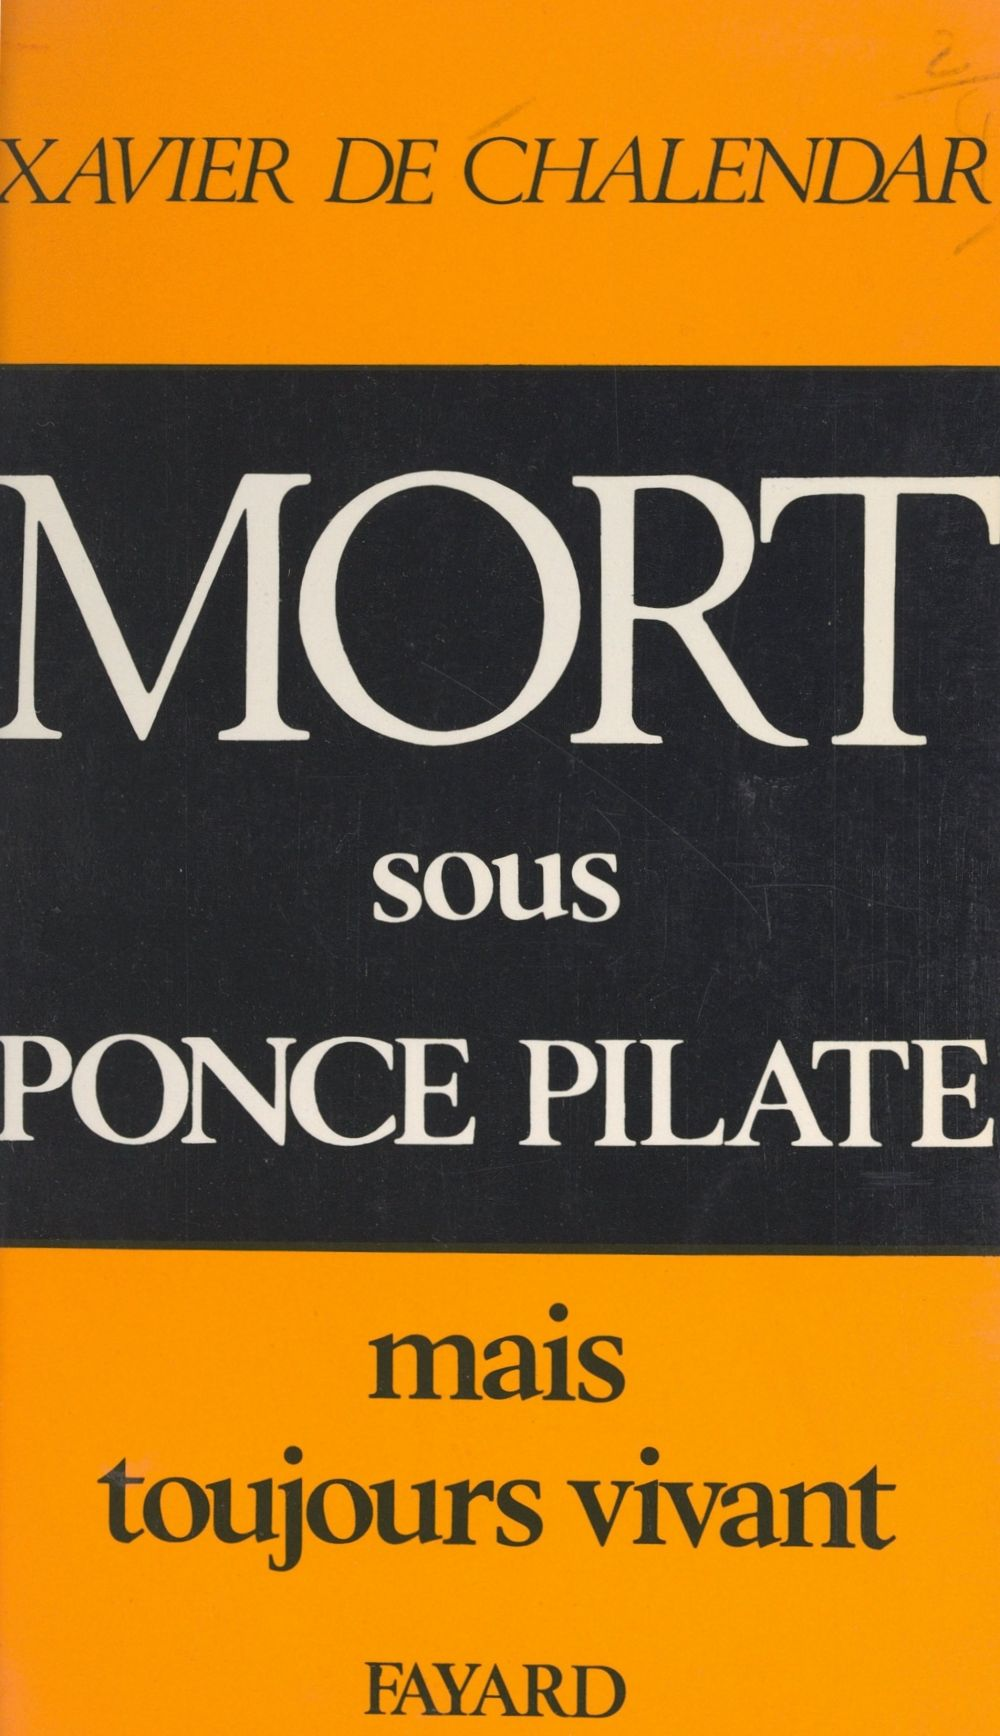 Mort sous Ponce Pilate